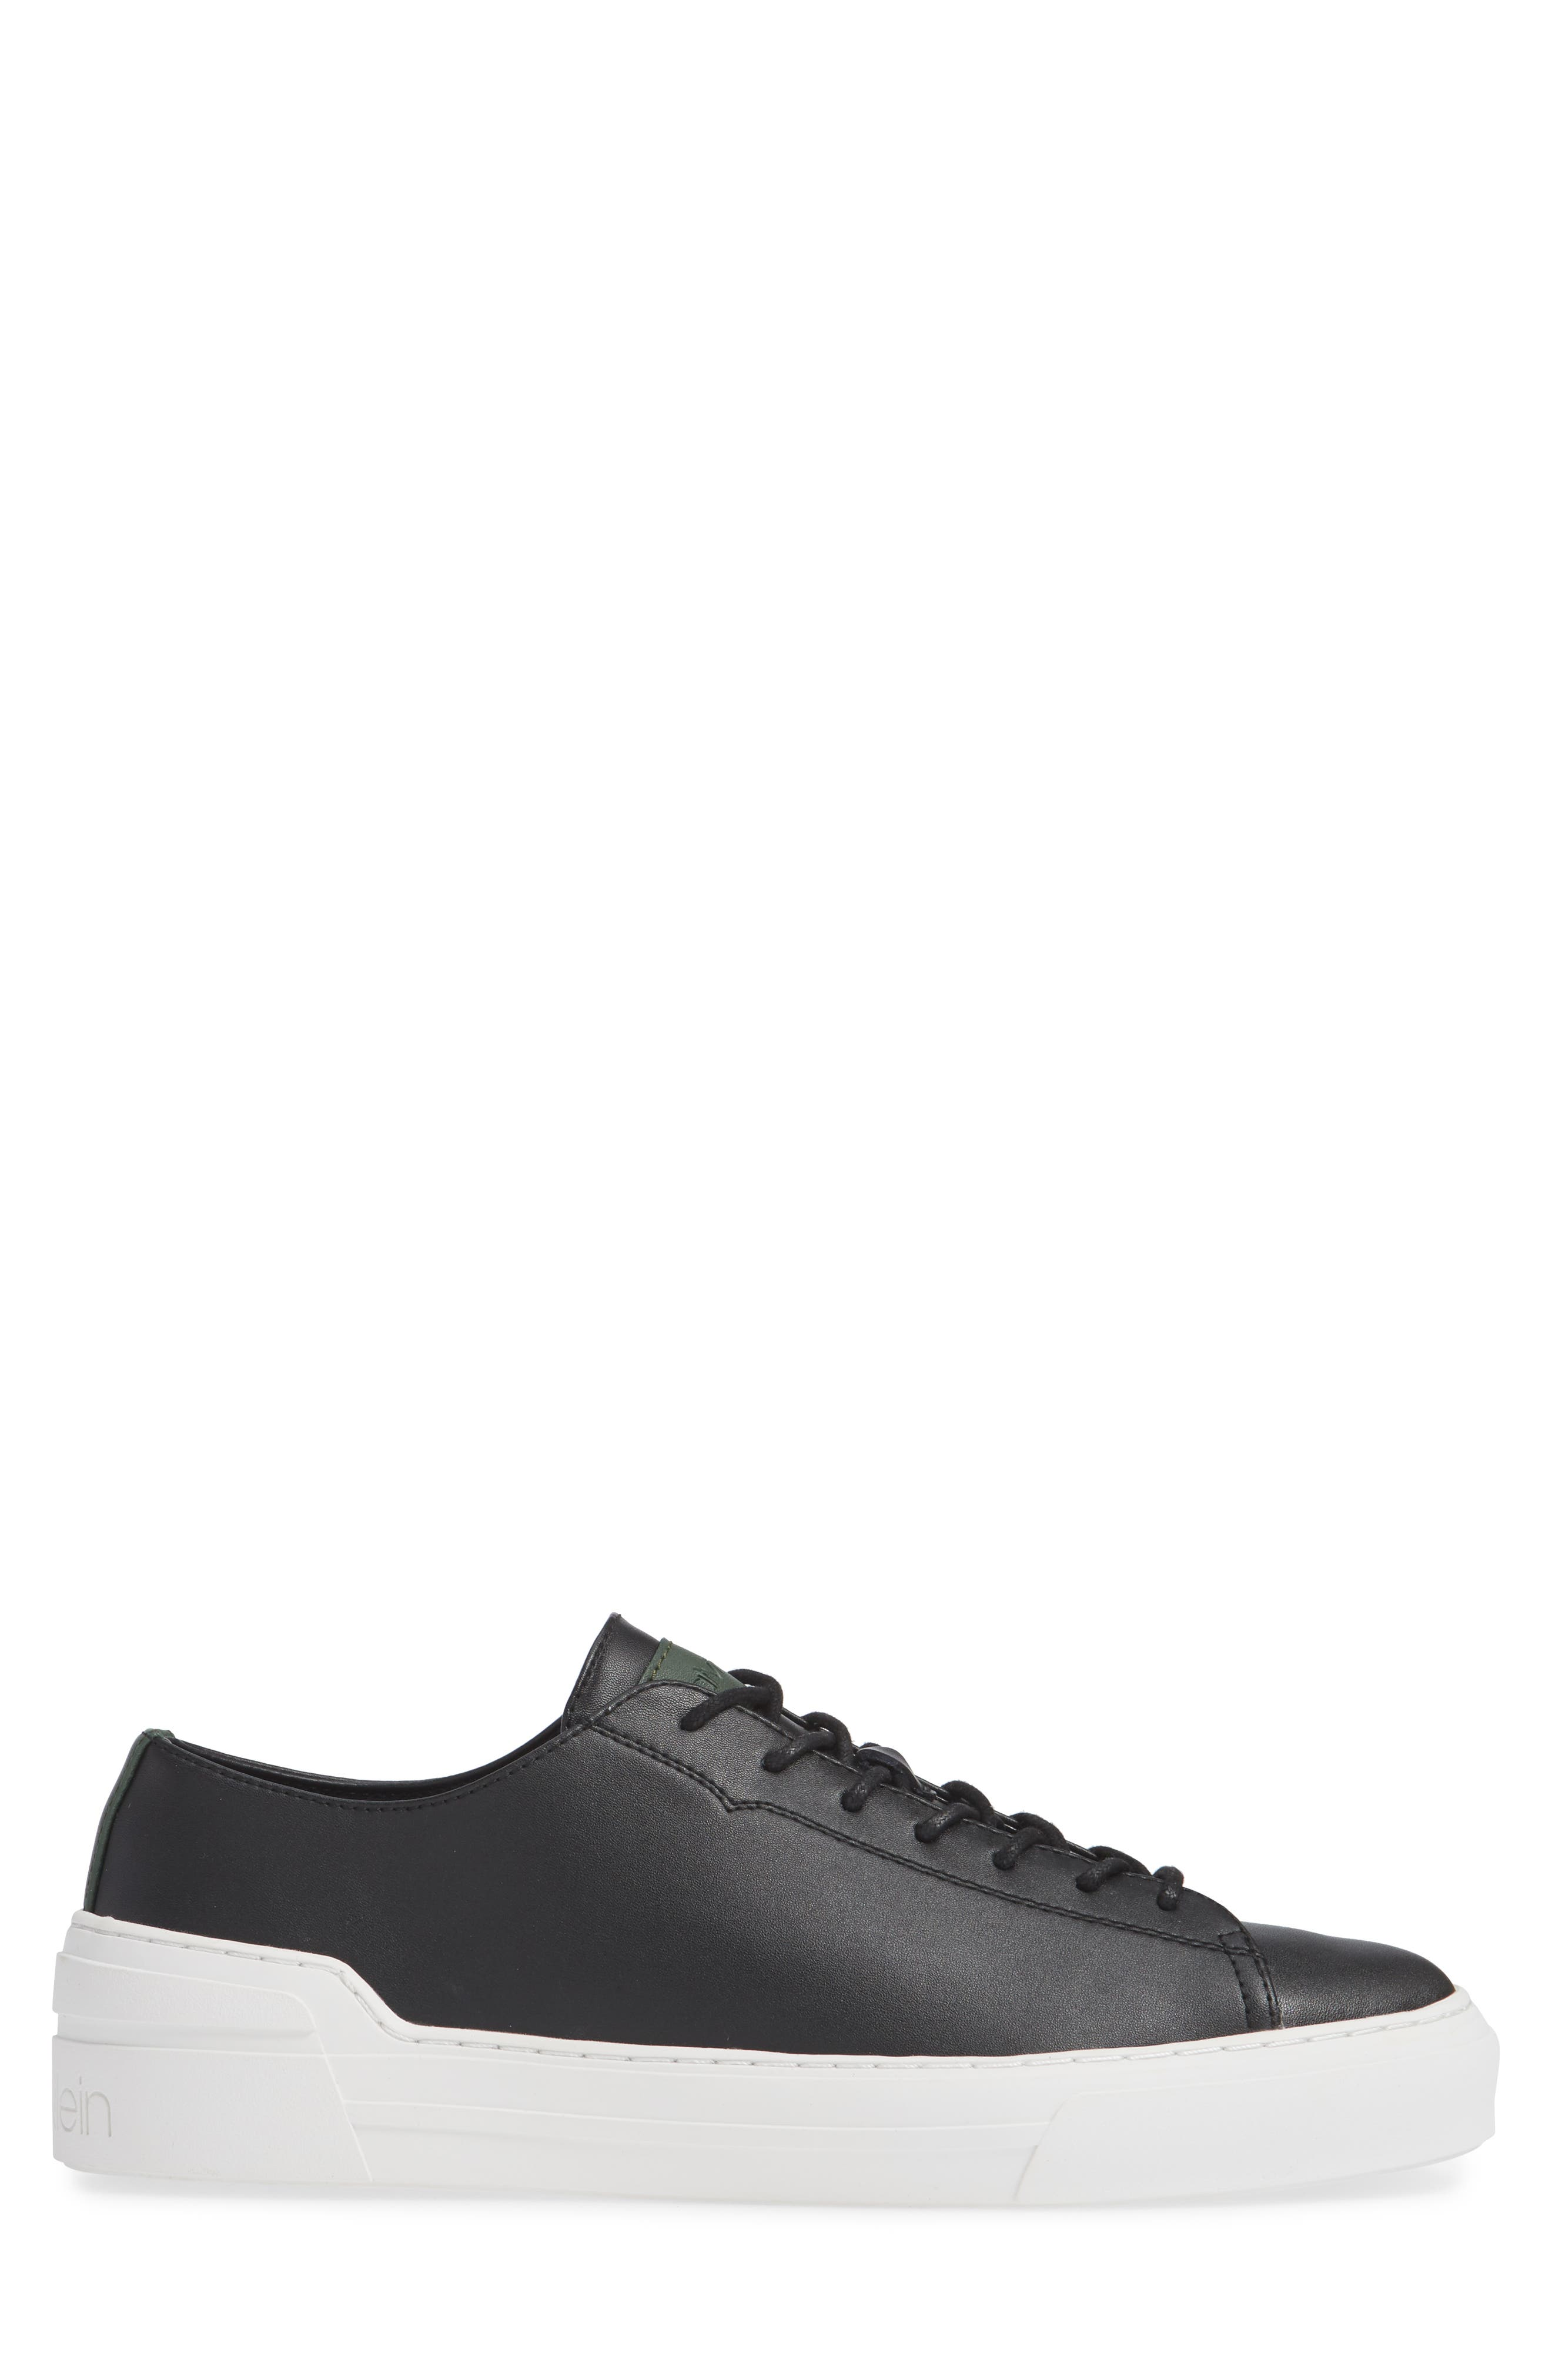 Octavian Low Top Sneaker,                             Alternate thumbnail 3, color,                             BLACK LEATHER